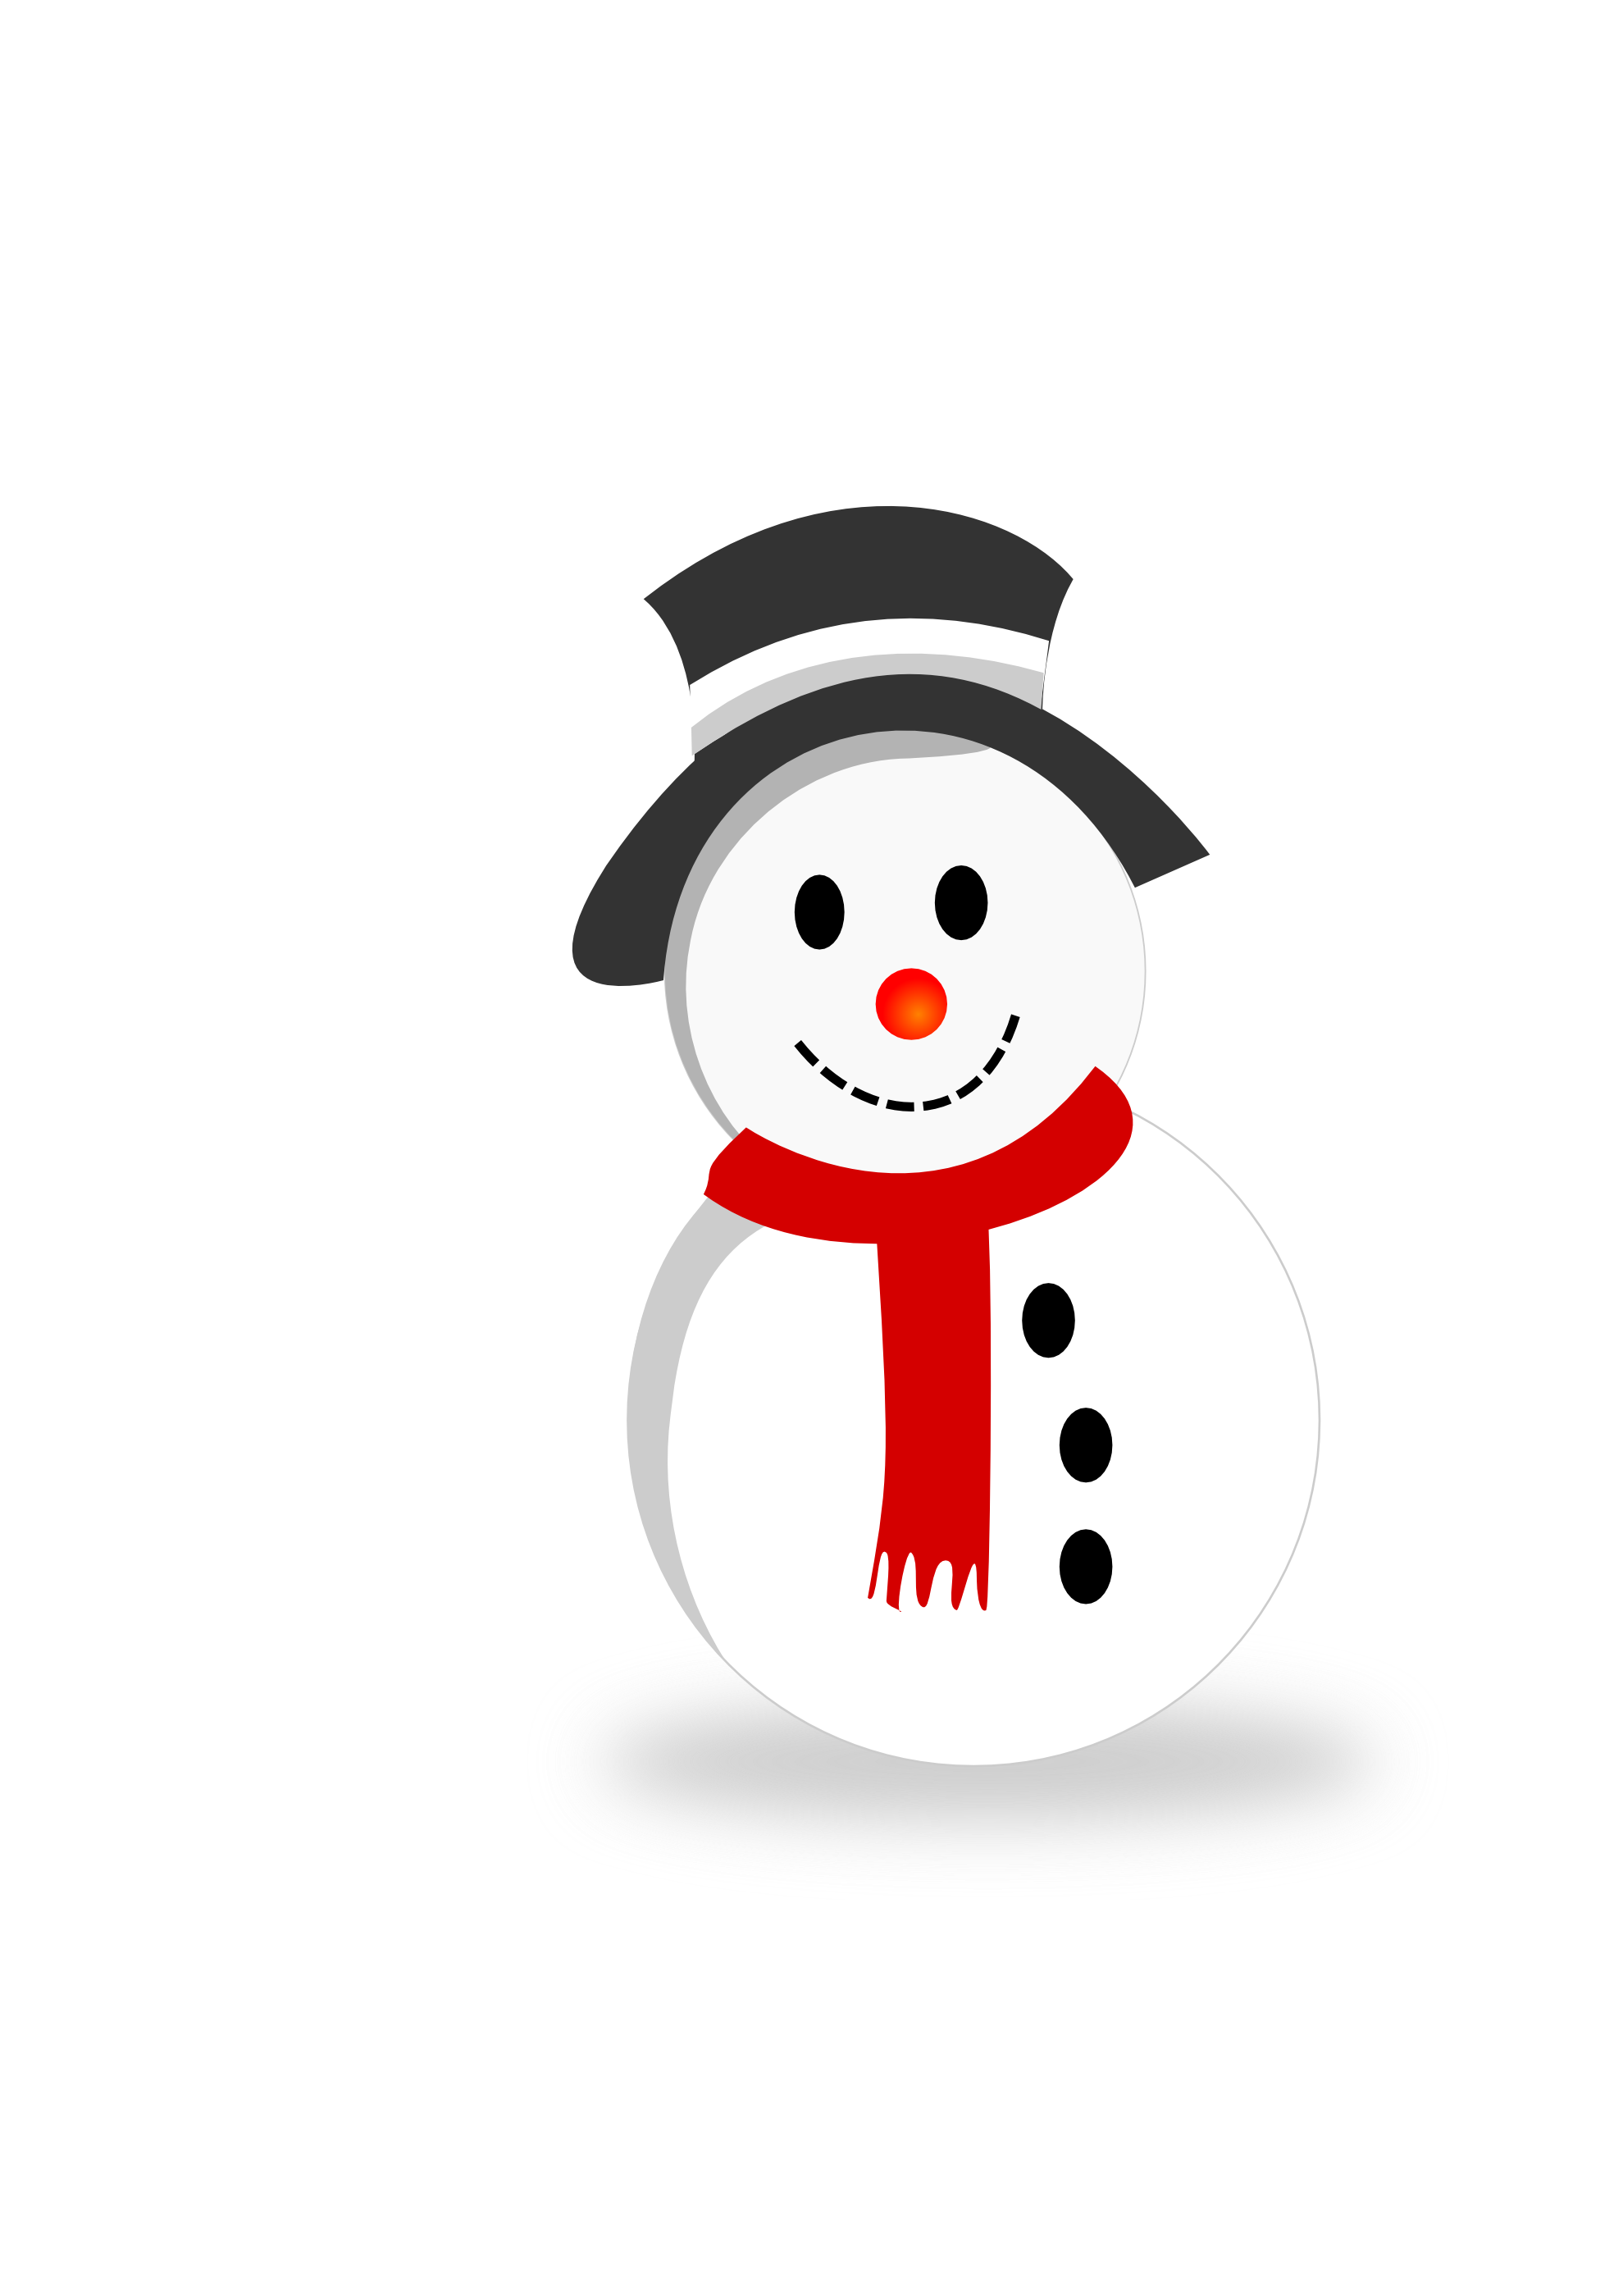 Clipartist net scalable graphics. Vector snowman black and white graphic free download